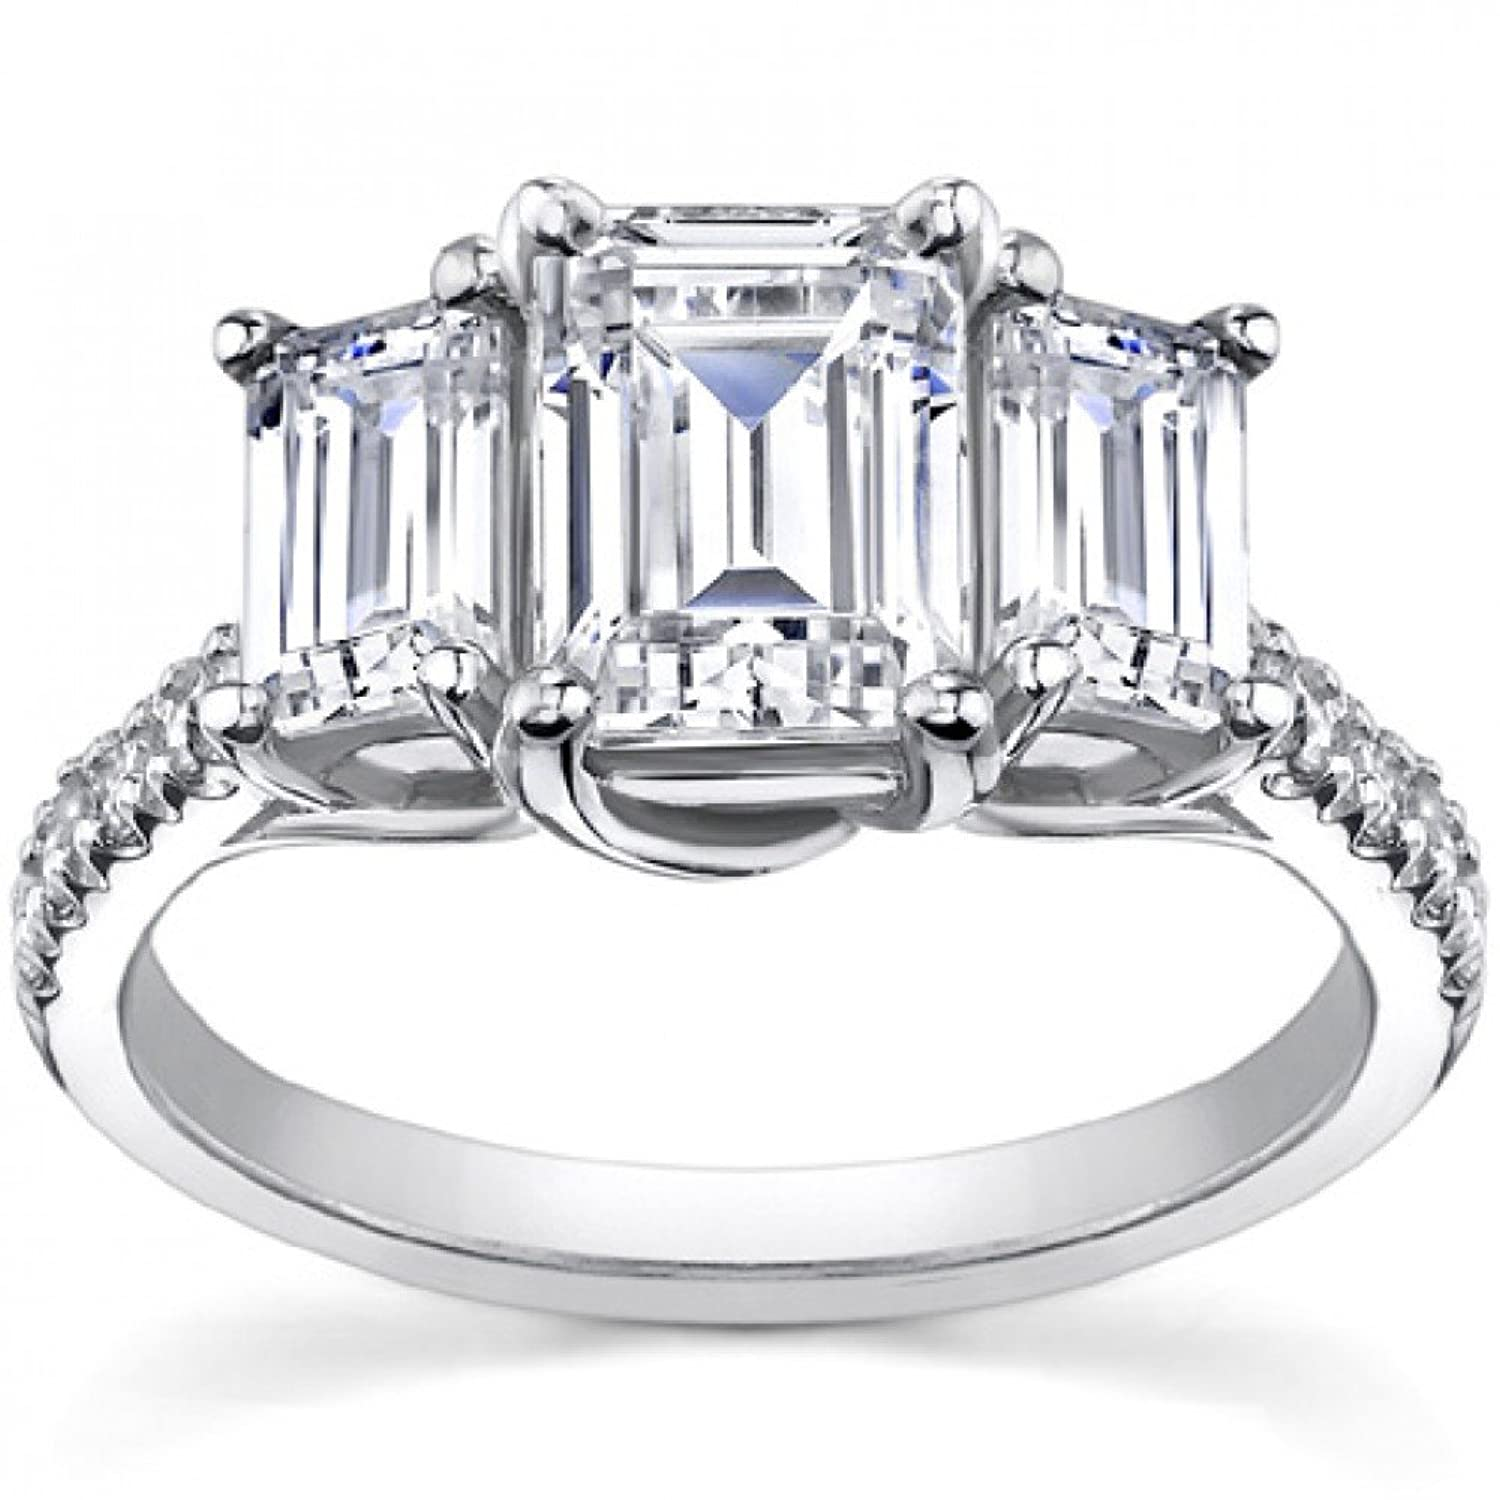 for ring of classy in elegant rings with prices diamond engagement platinium india platinum women price